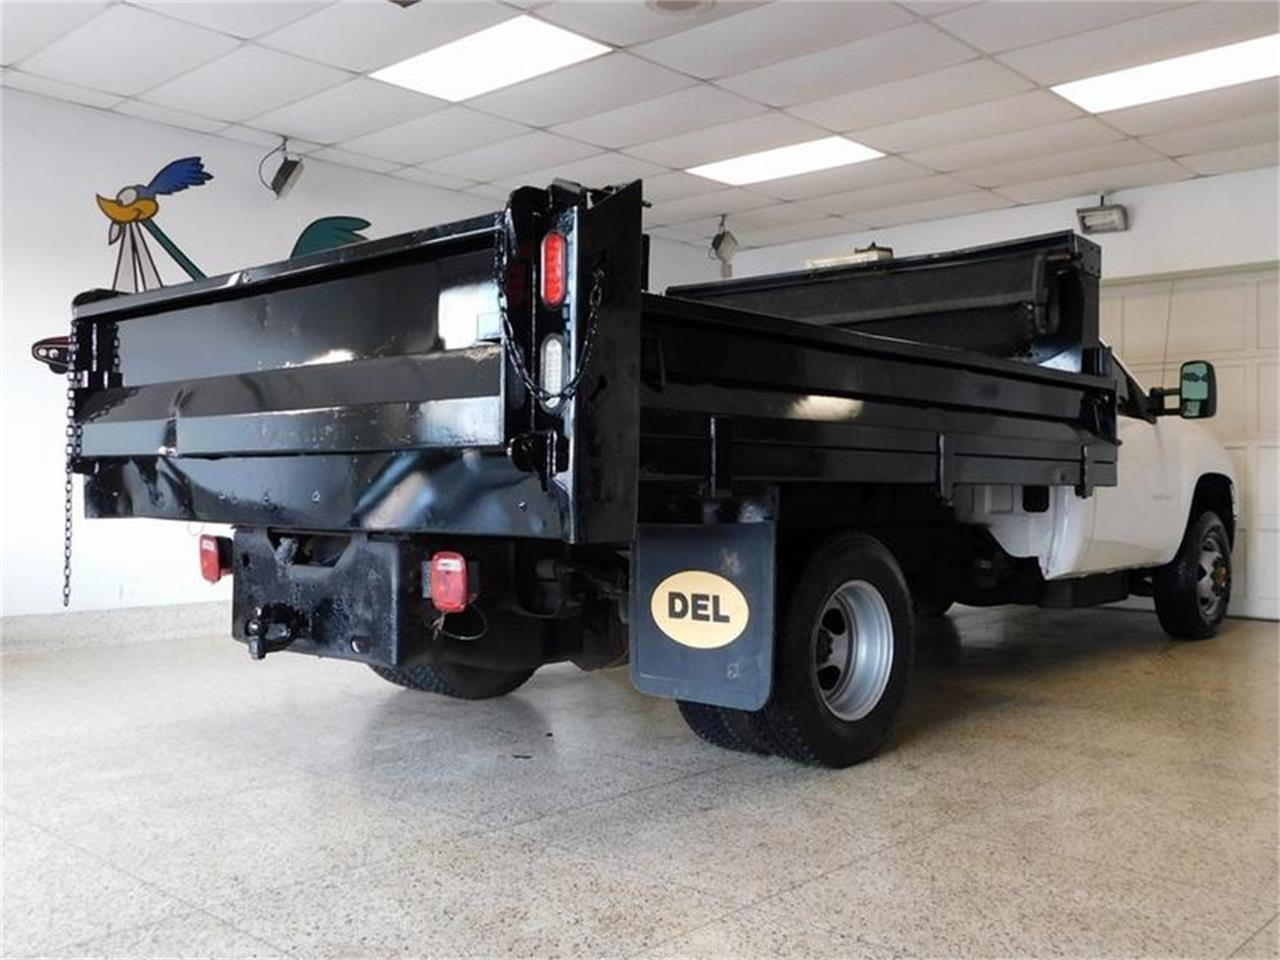 Large Picture of '12 GMC Dump Truck located in Hamburg New York - $32,875.00 - Q4MY